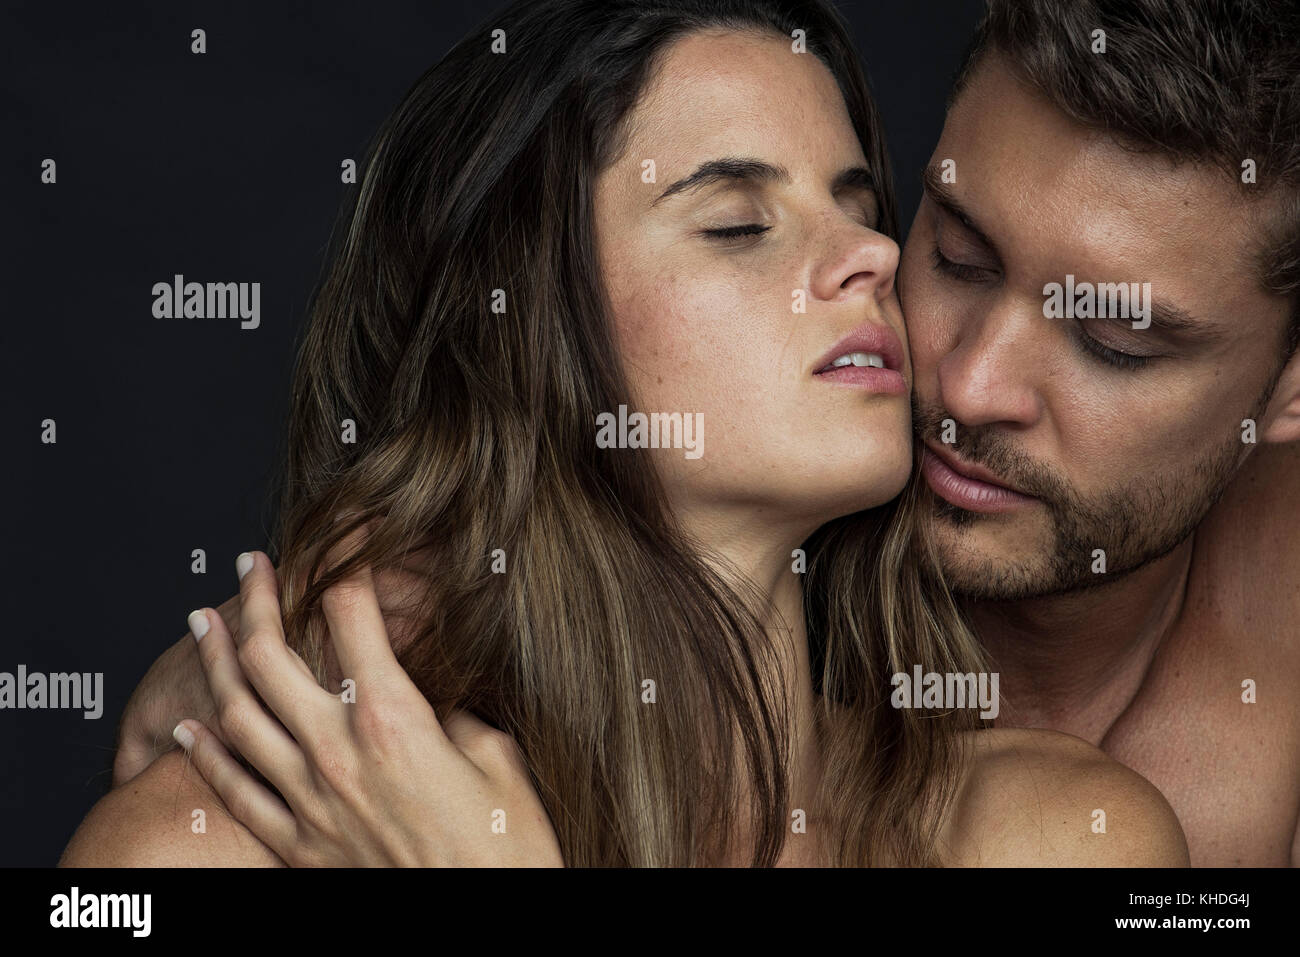 Passionate couple cheek to cheek with eyes closed Stock Photo